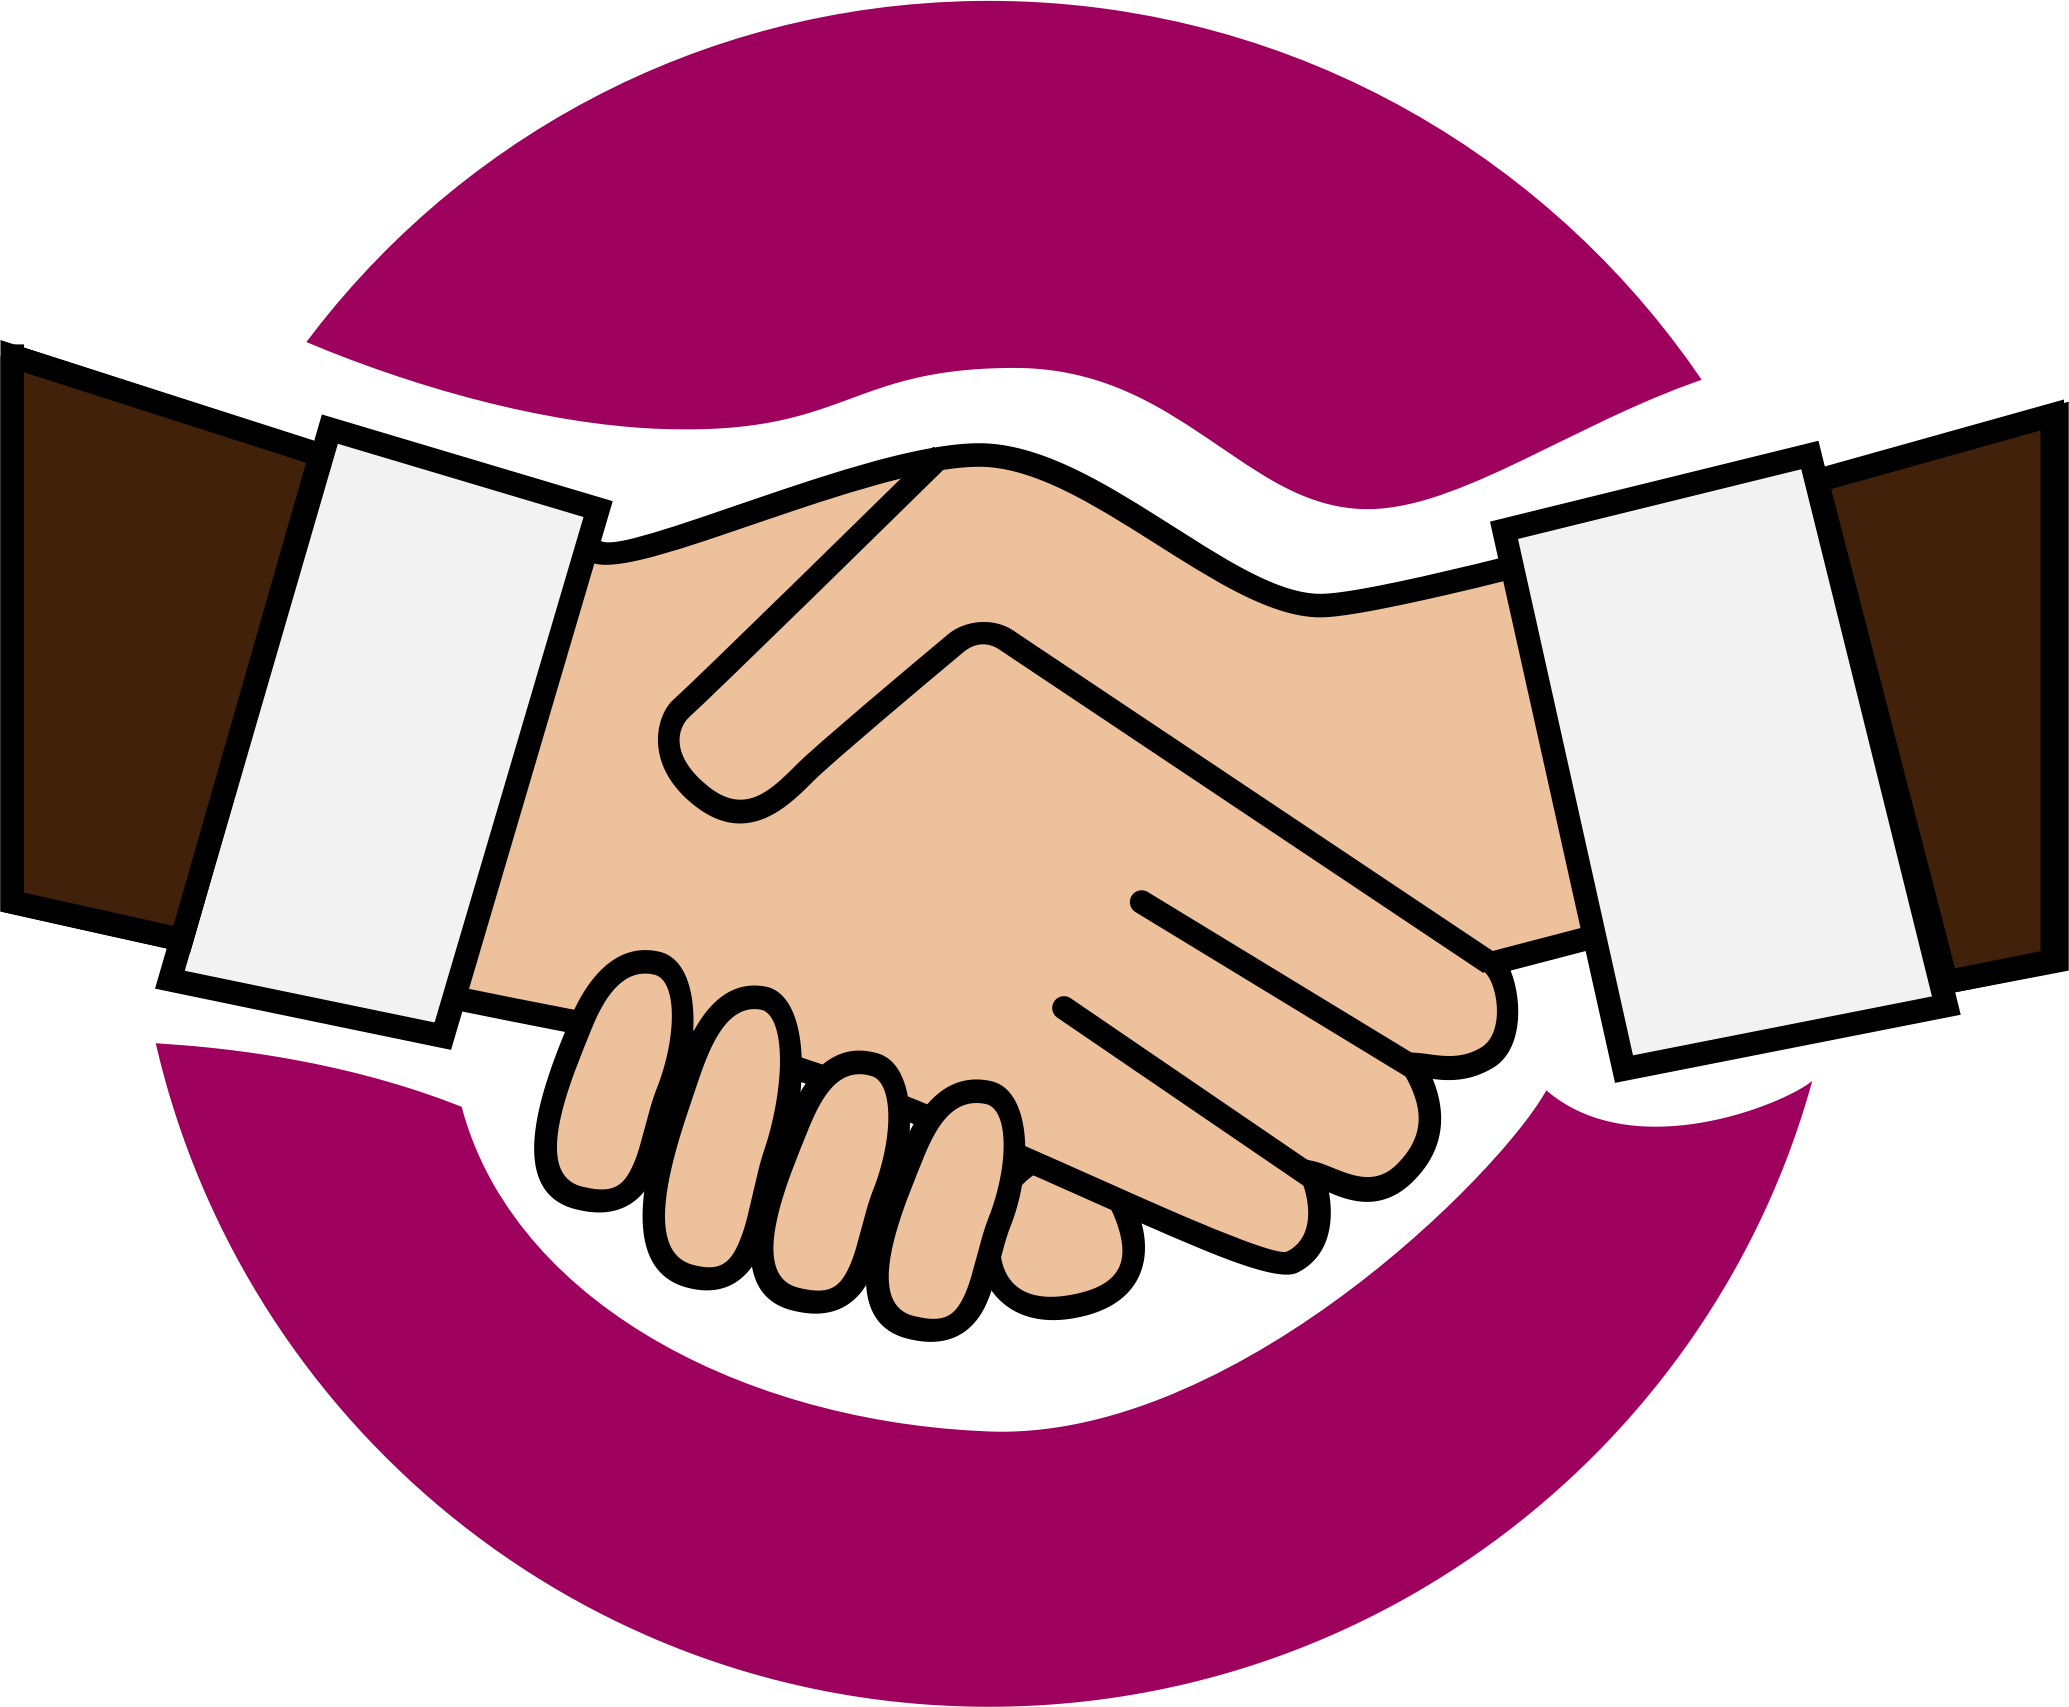 clipart a handshake icon rh openclipart org handshake clipart transparent handshake clipart black and white